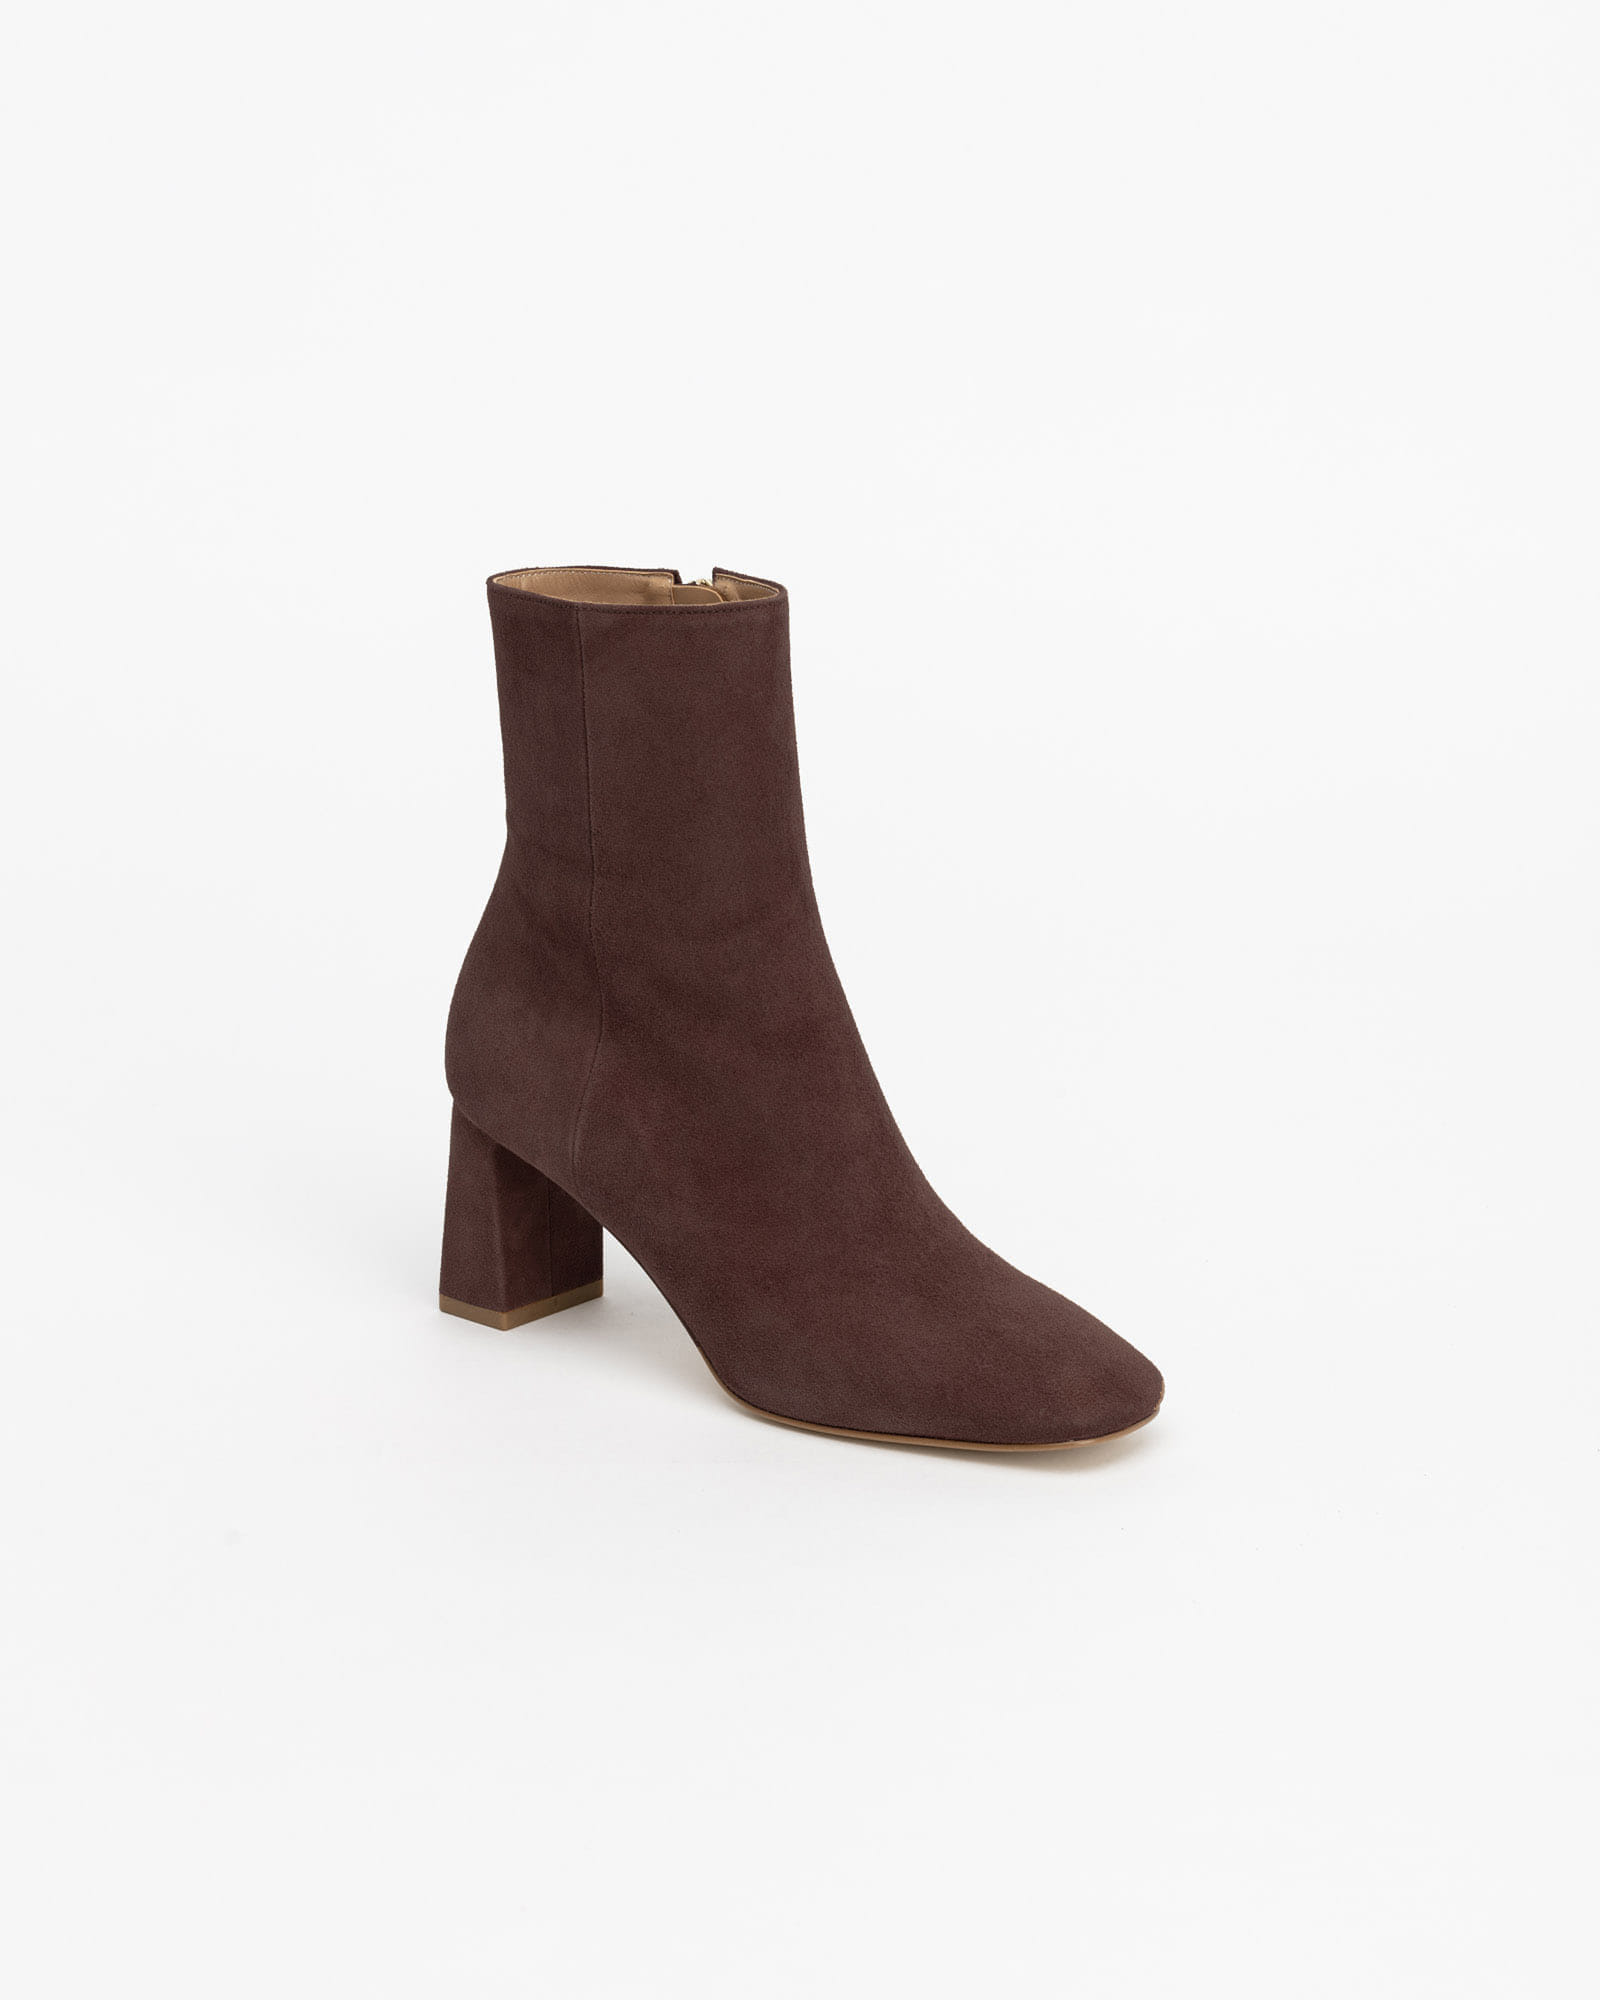 Railer Boots in Dark Brown Suede